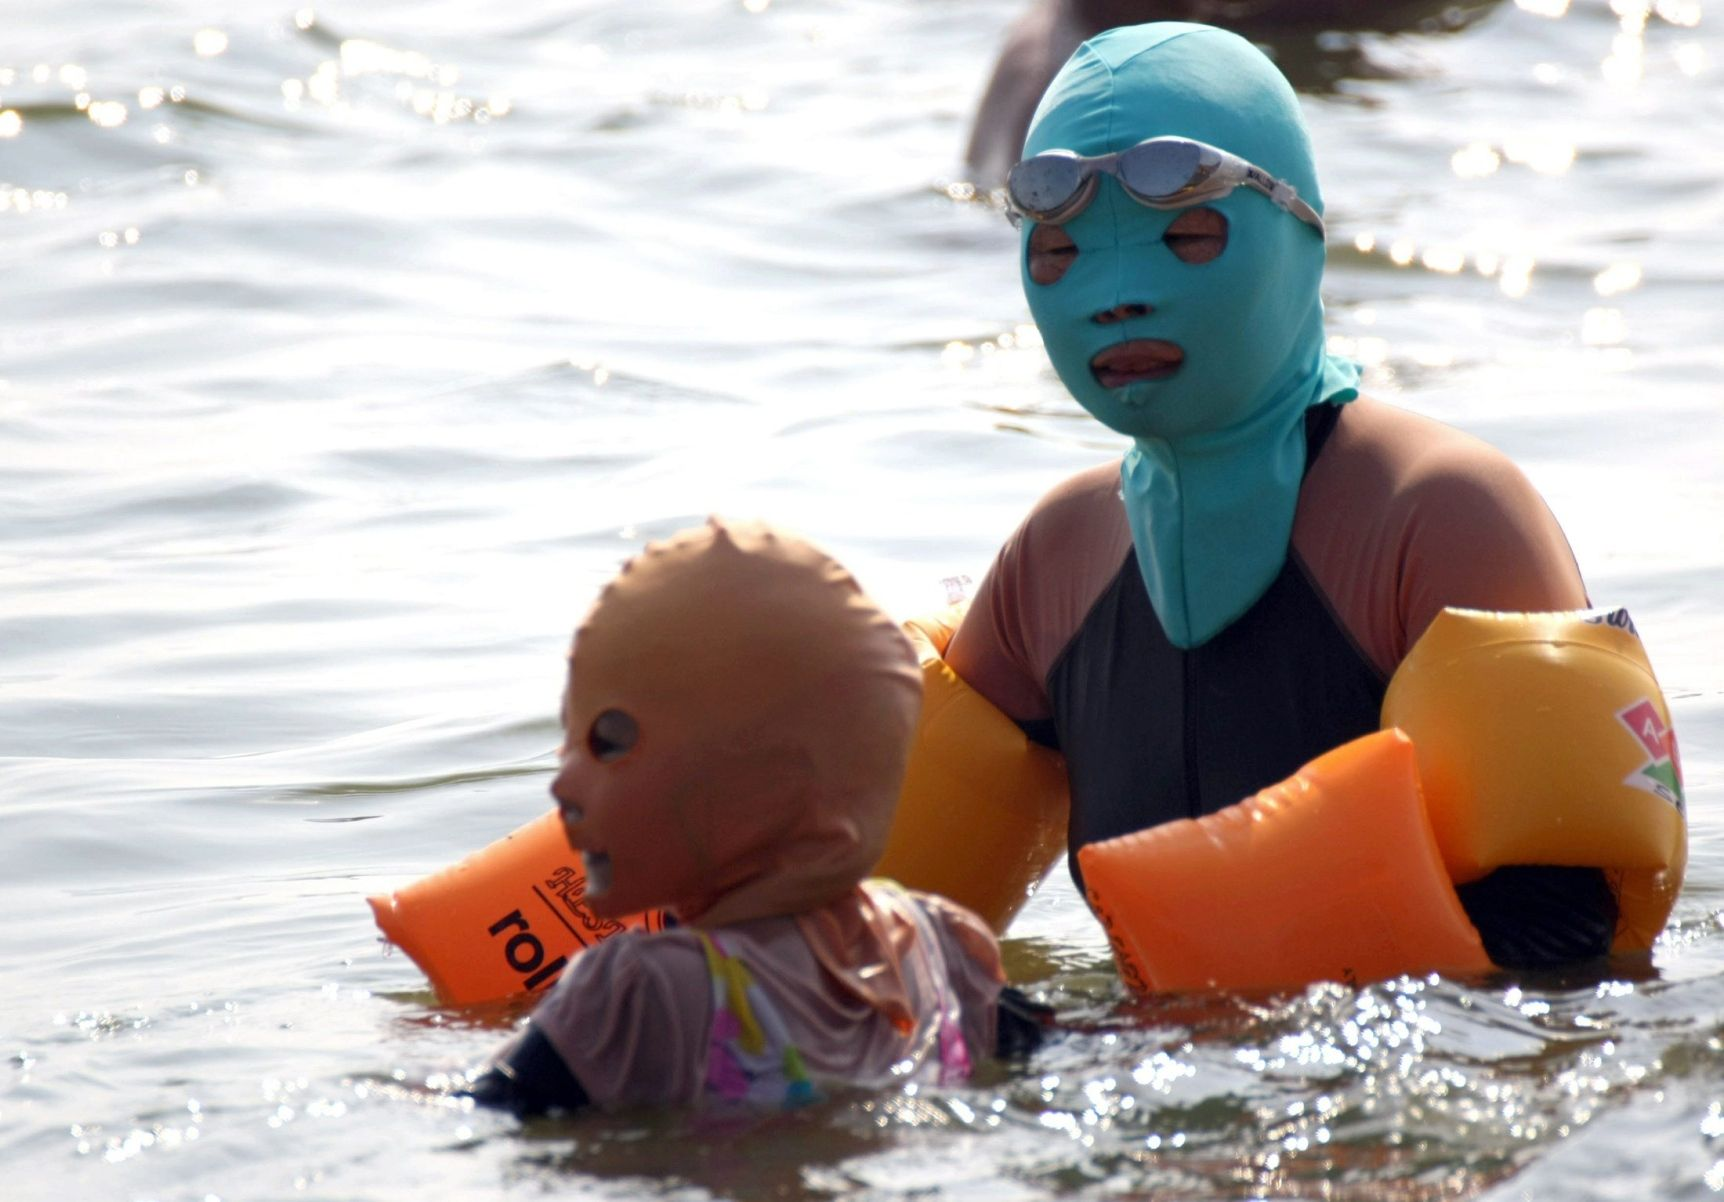 In China, where sun tan is negatively stigmatized, beach goers wear masks.